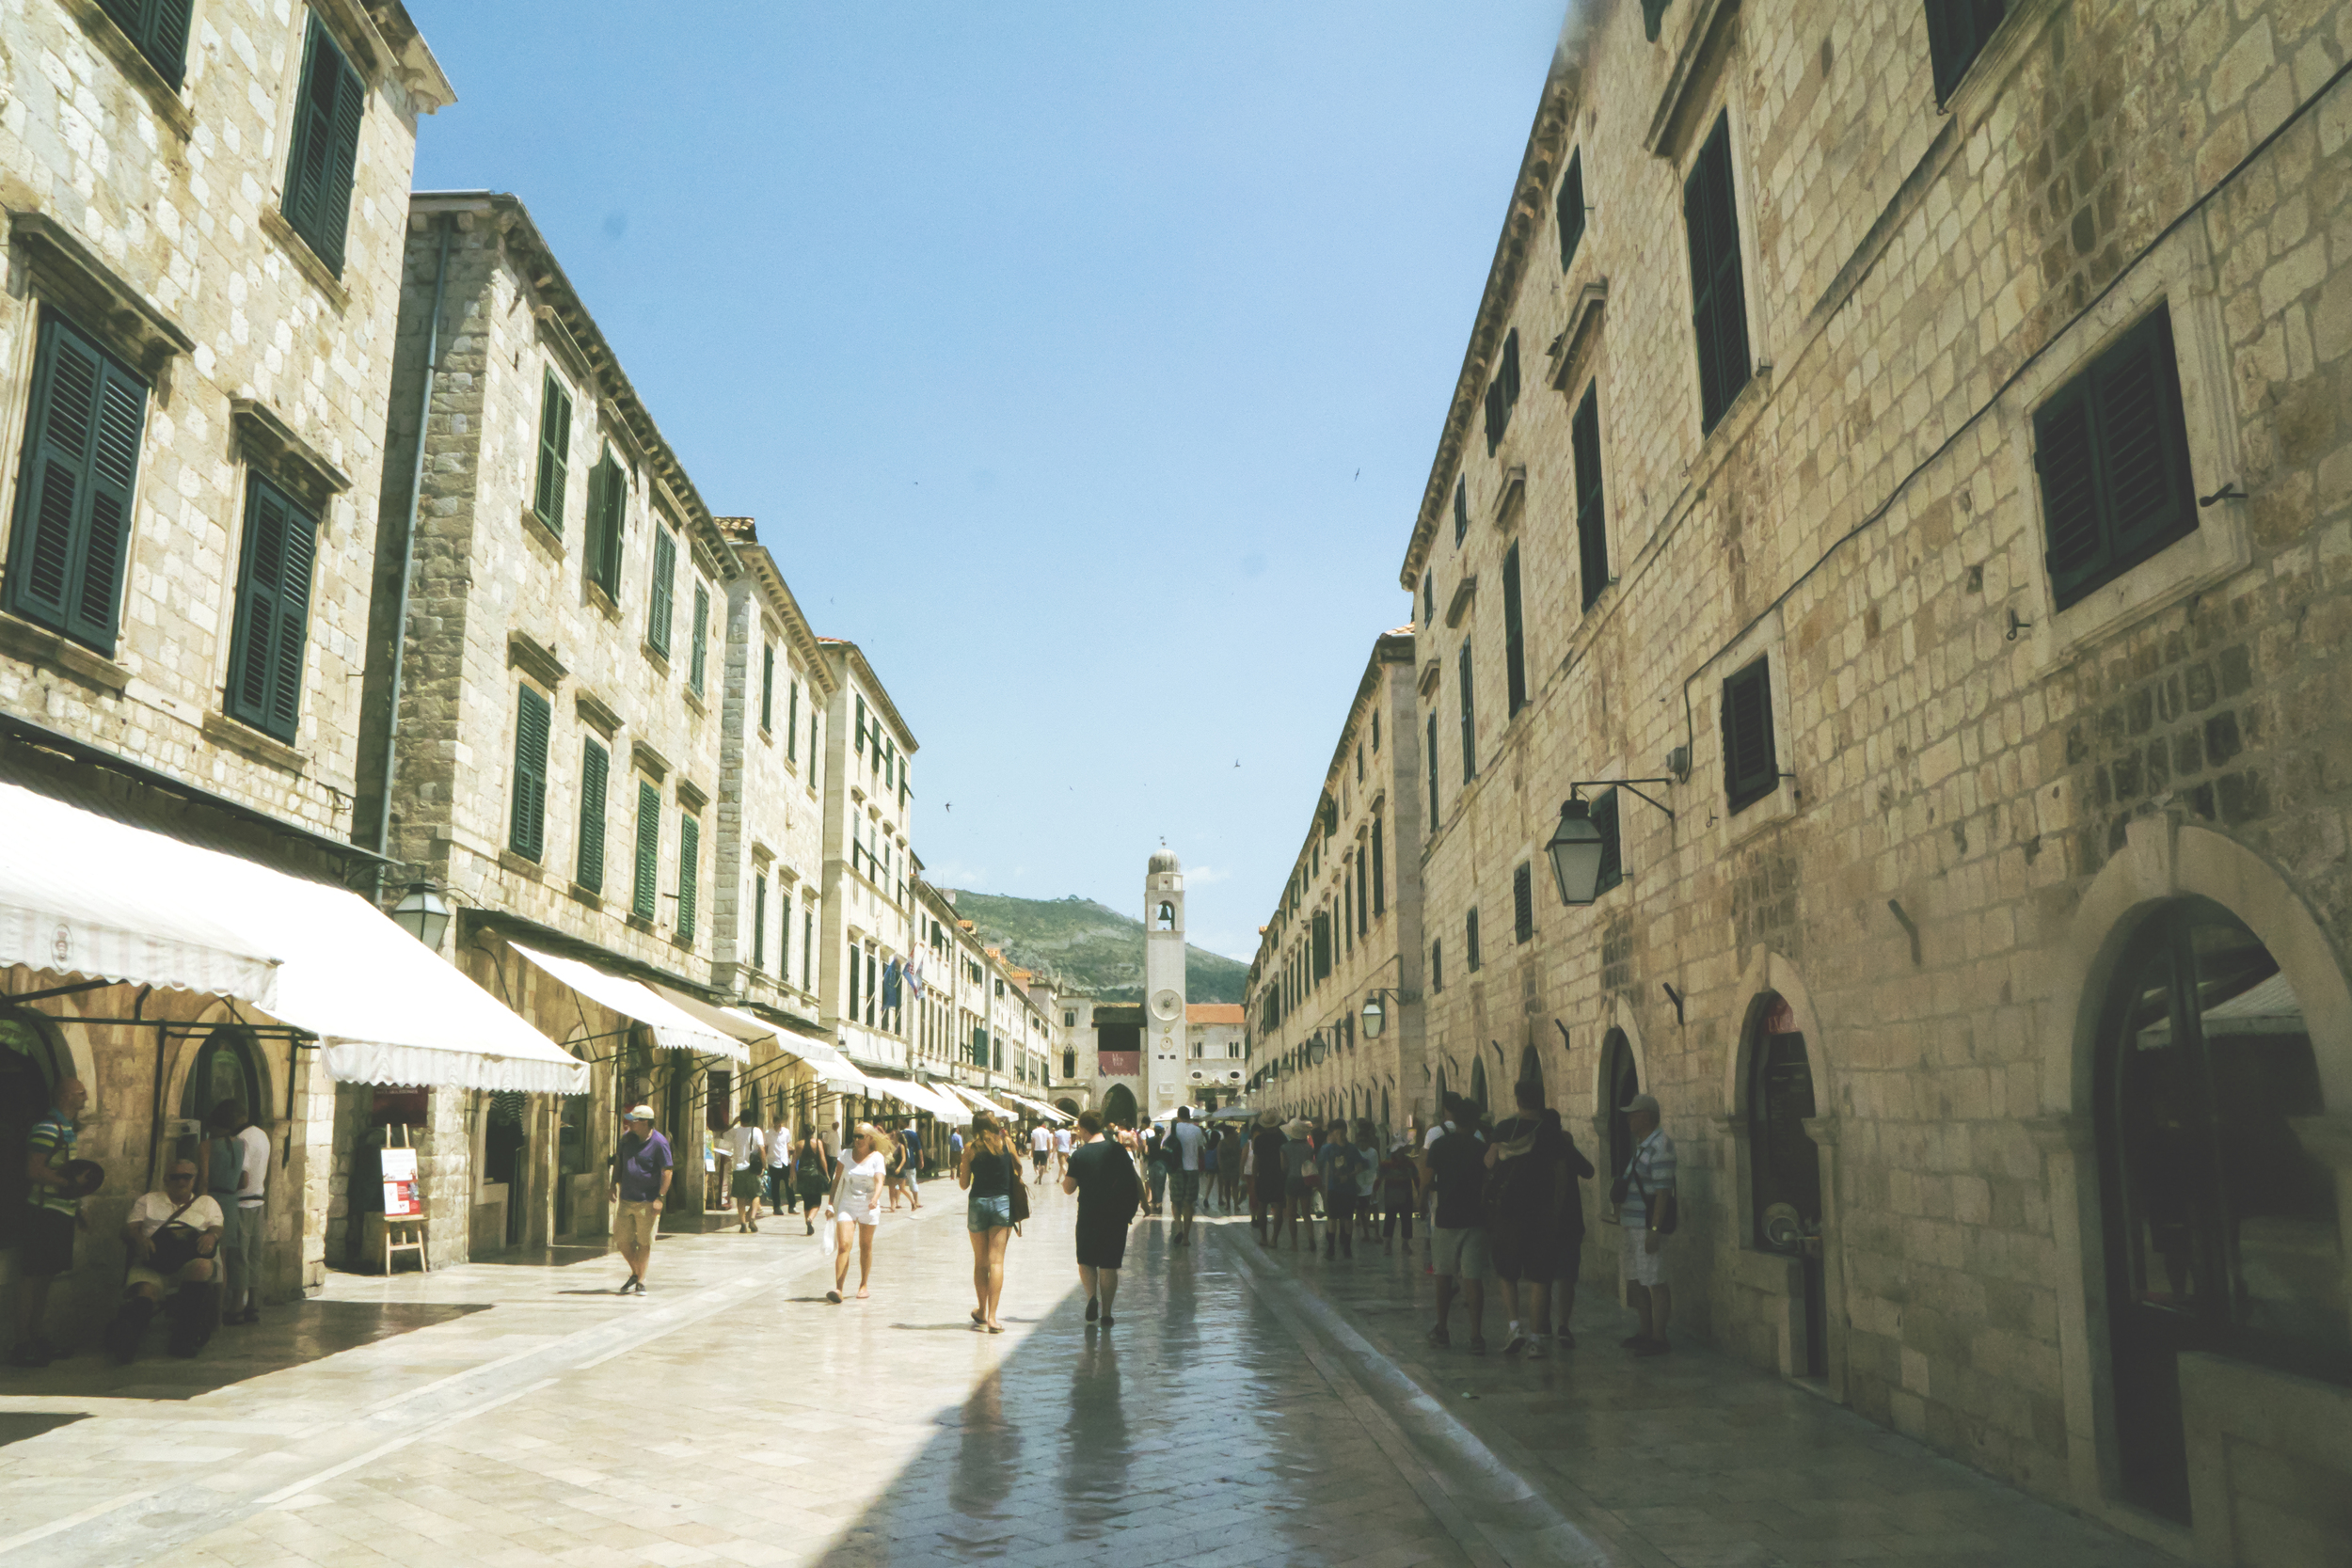 Placa or Stradun street. One of the main streets of the old town.